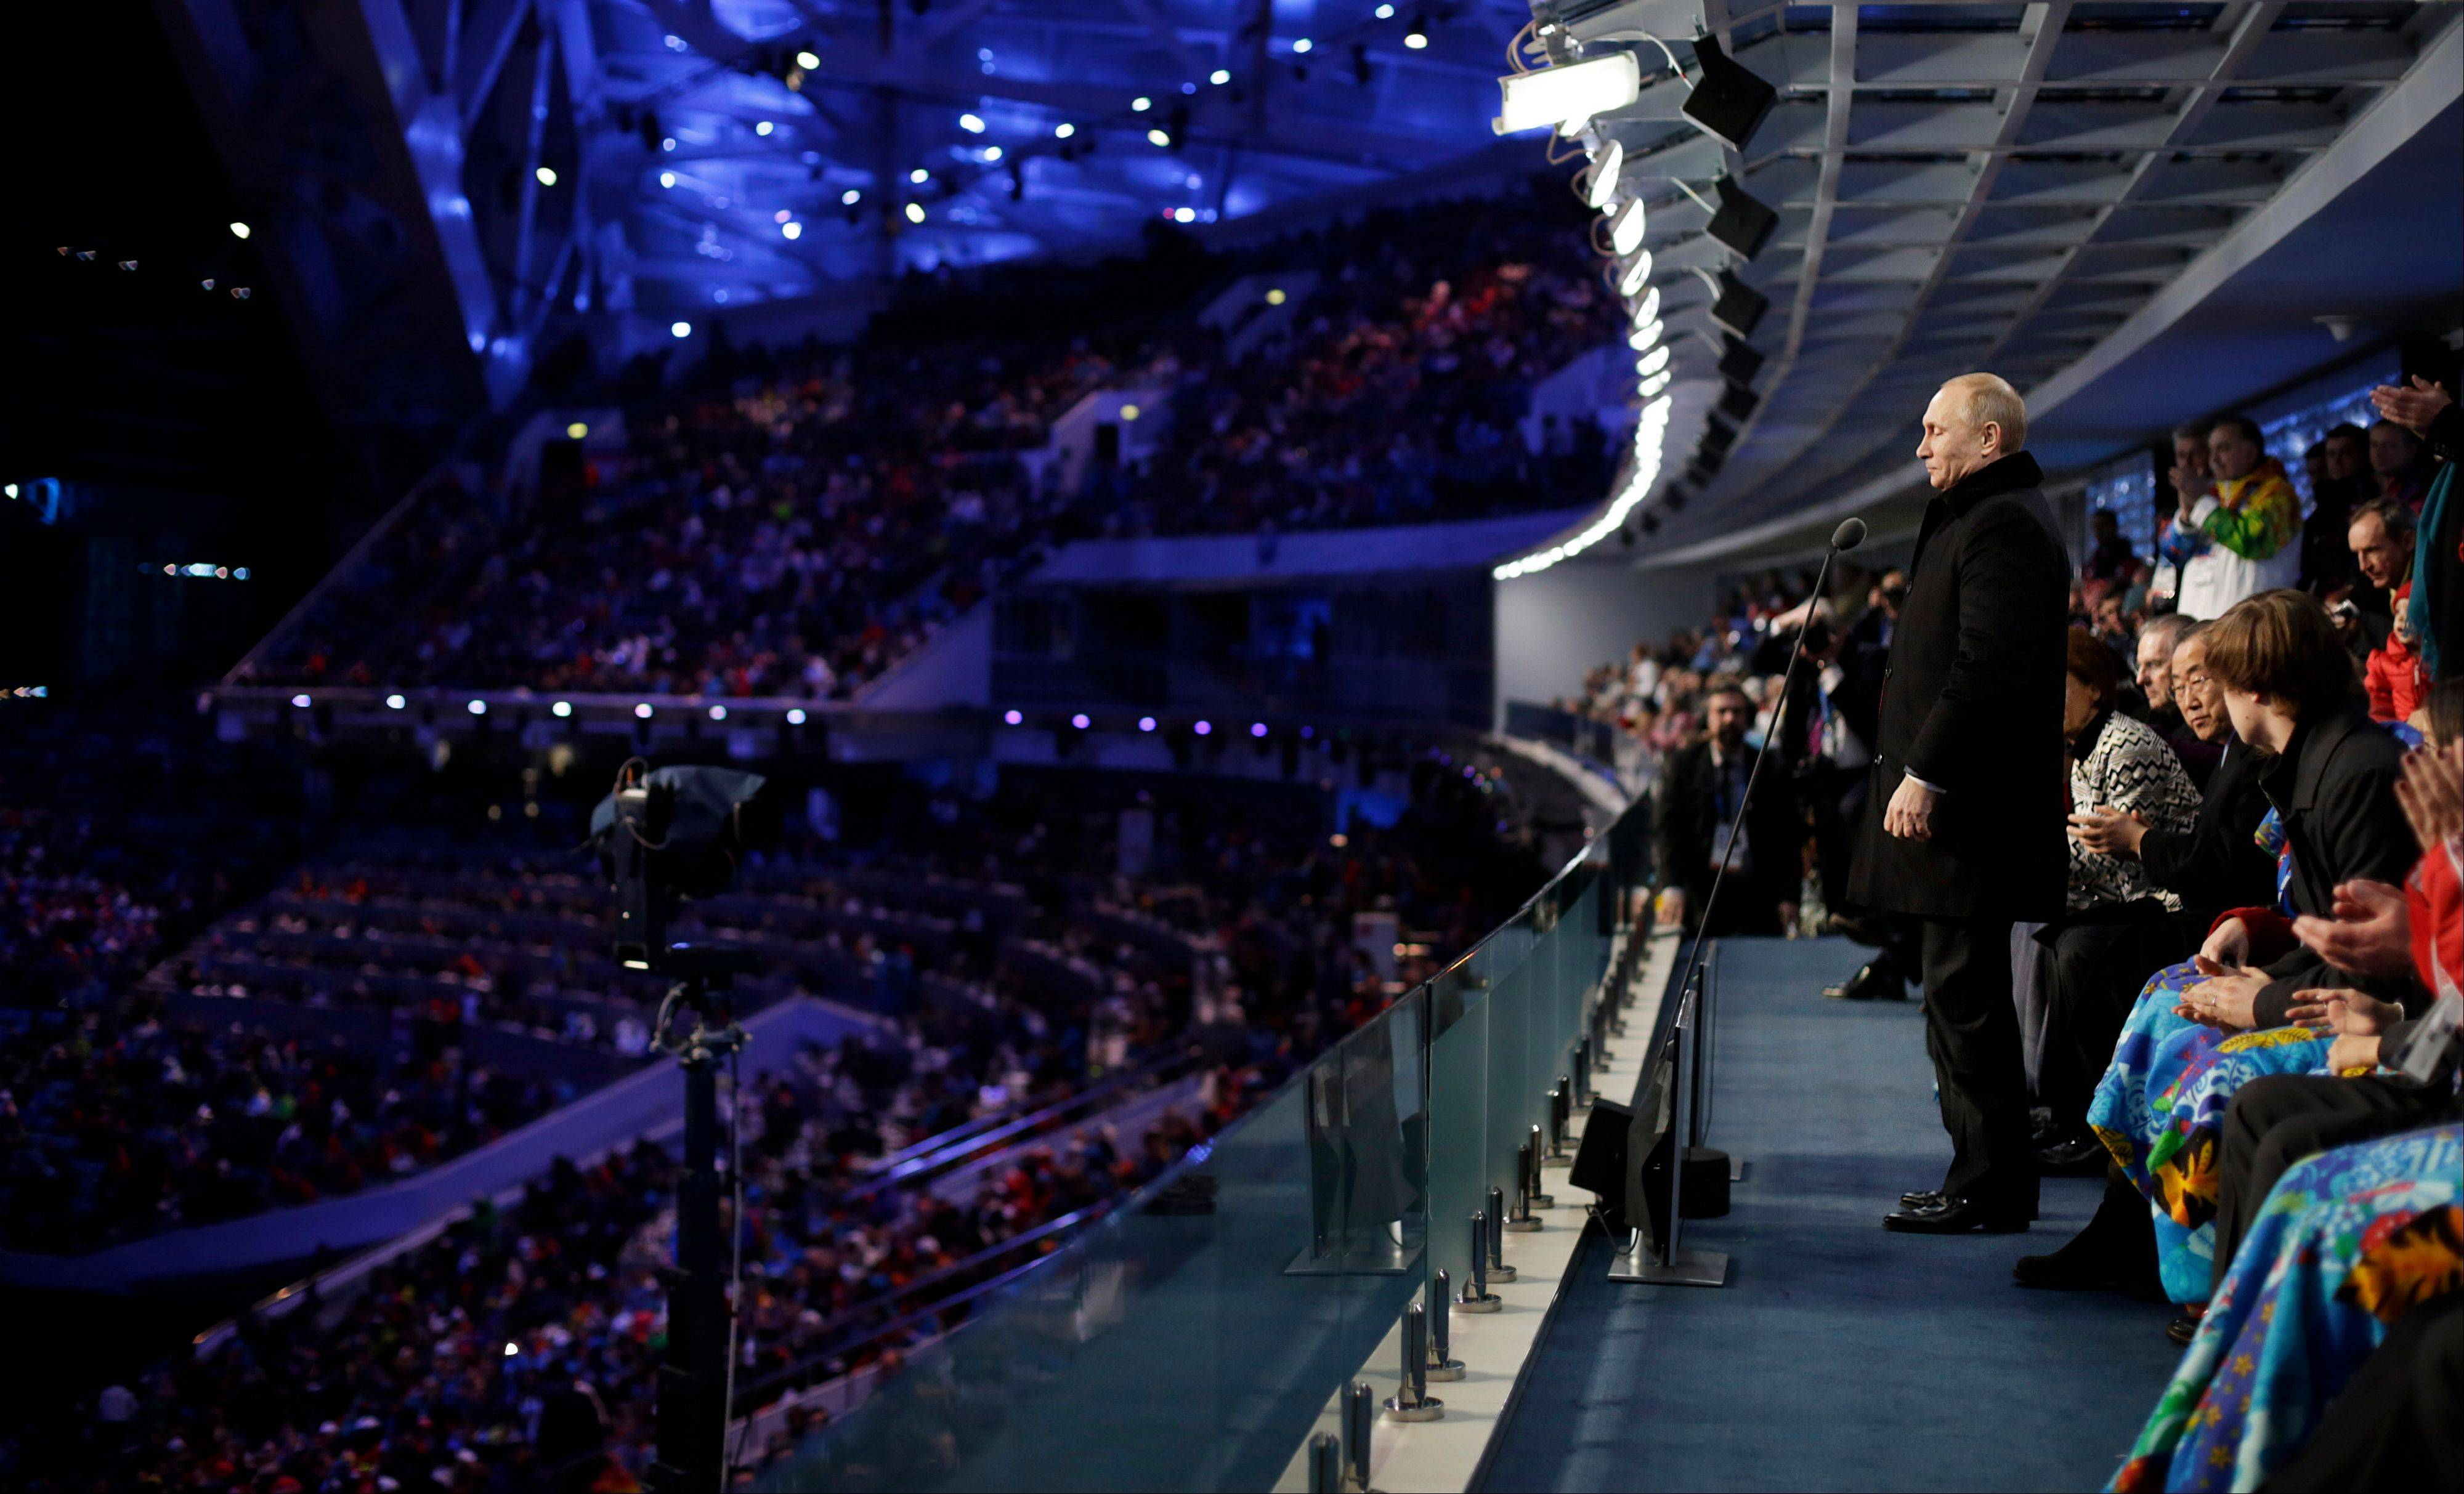 Russian President Vladimir Putin, right, stands to declare the 2014 Winter Olympics open.